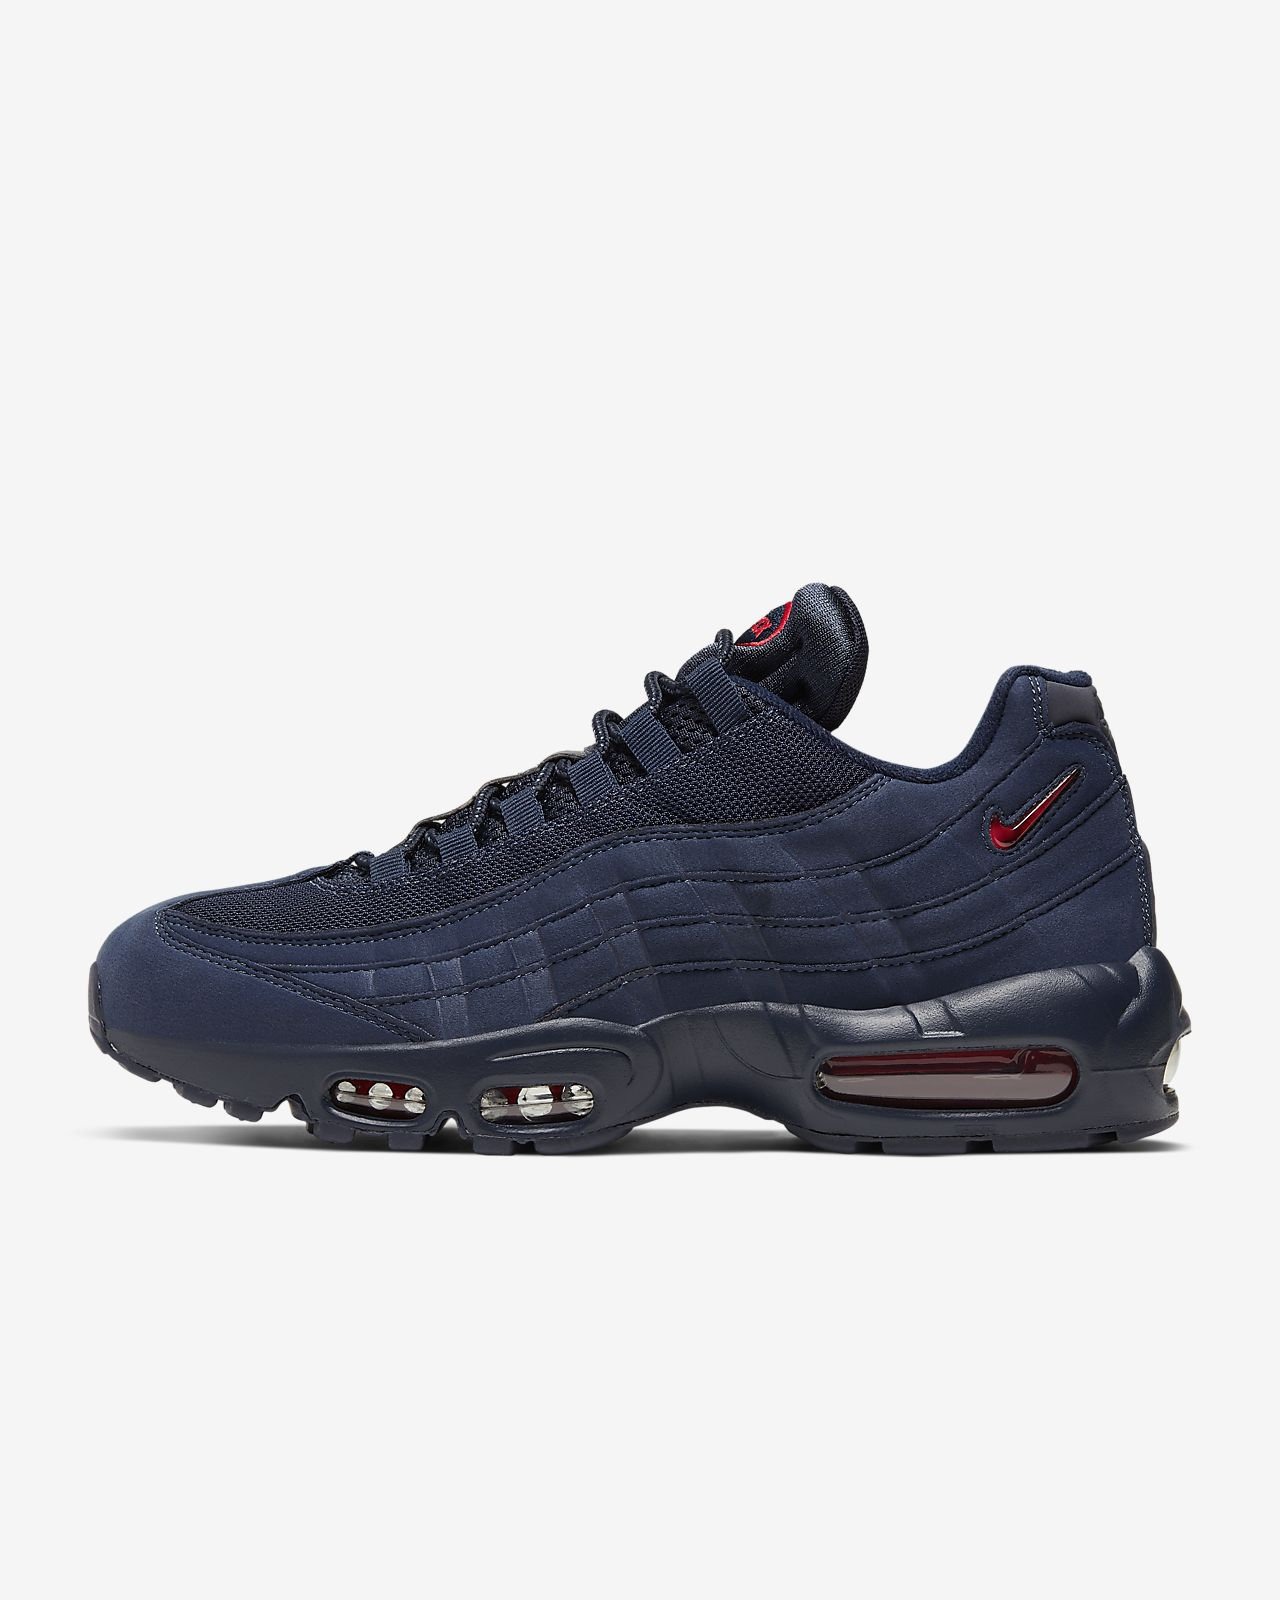 Nike 95 Pour Chaussure Homme Max Air NOwym80nv